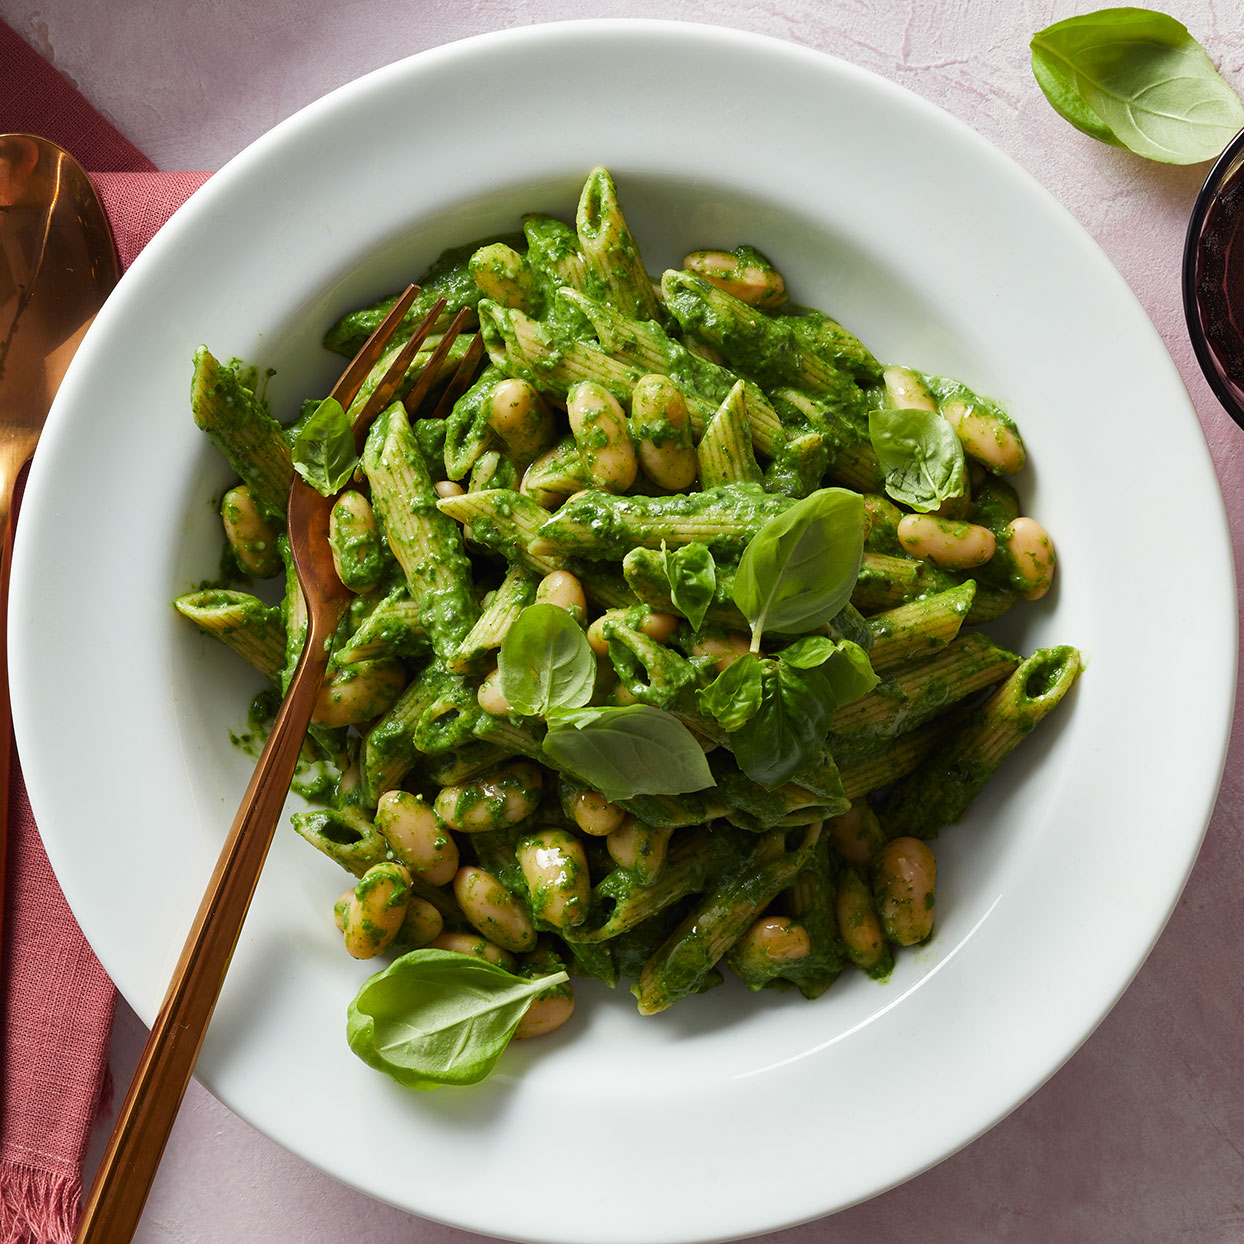 Here, we whir up fresh spinach and kale with cream cheese and Gruyère for the luscious sauce that highlights this rich pasta dish. Paired with beans, it makes a filling vegetarian meal.